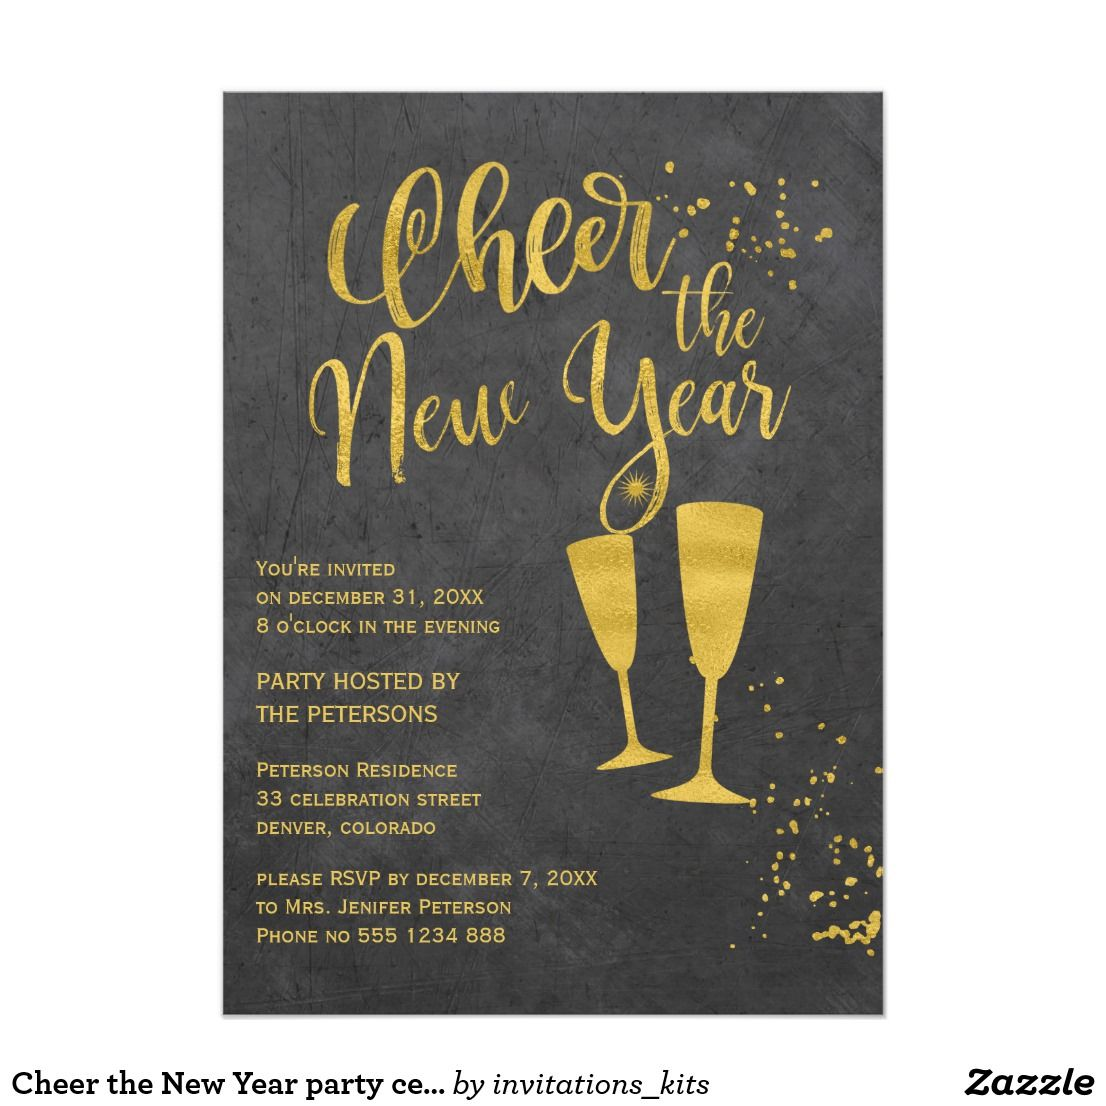 cheer the new year party celebration invite